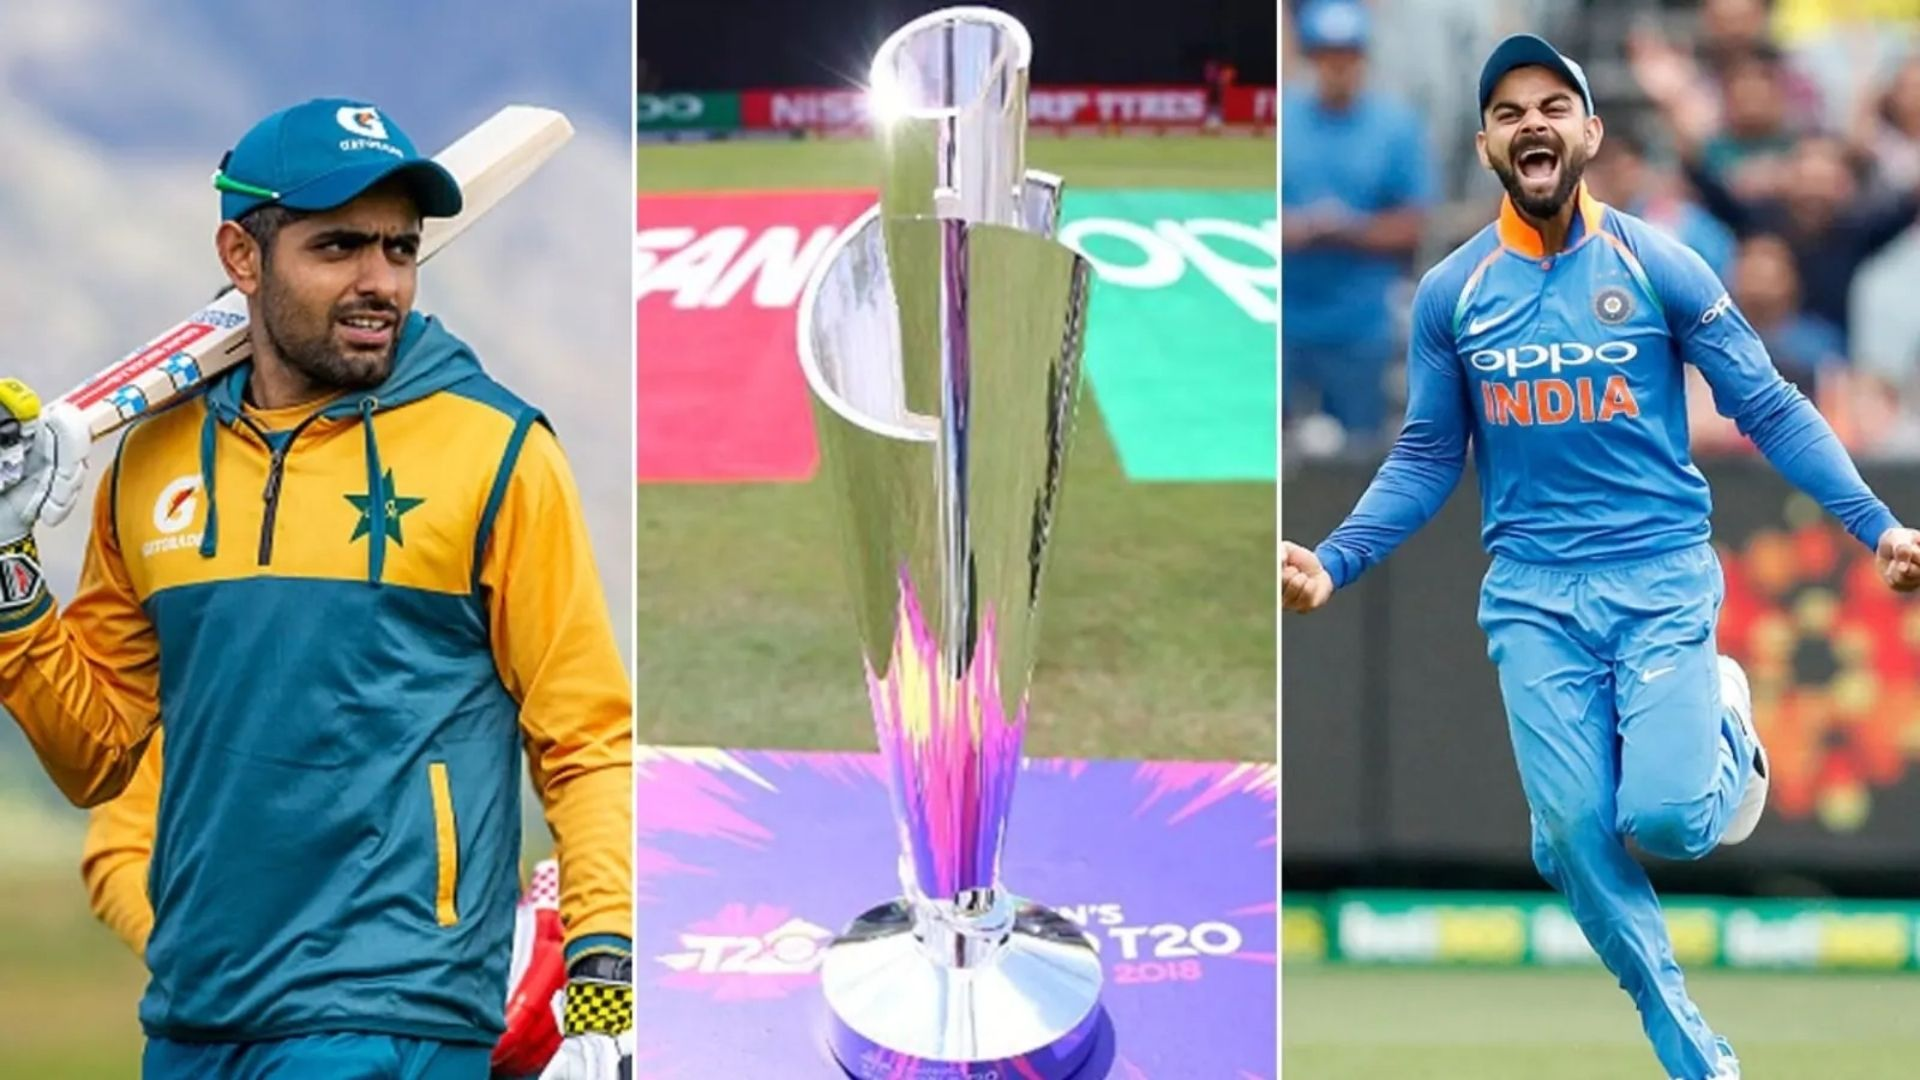 Pakistan vs India Head to Head in T20 World Cup Matches History